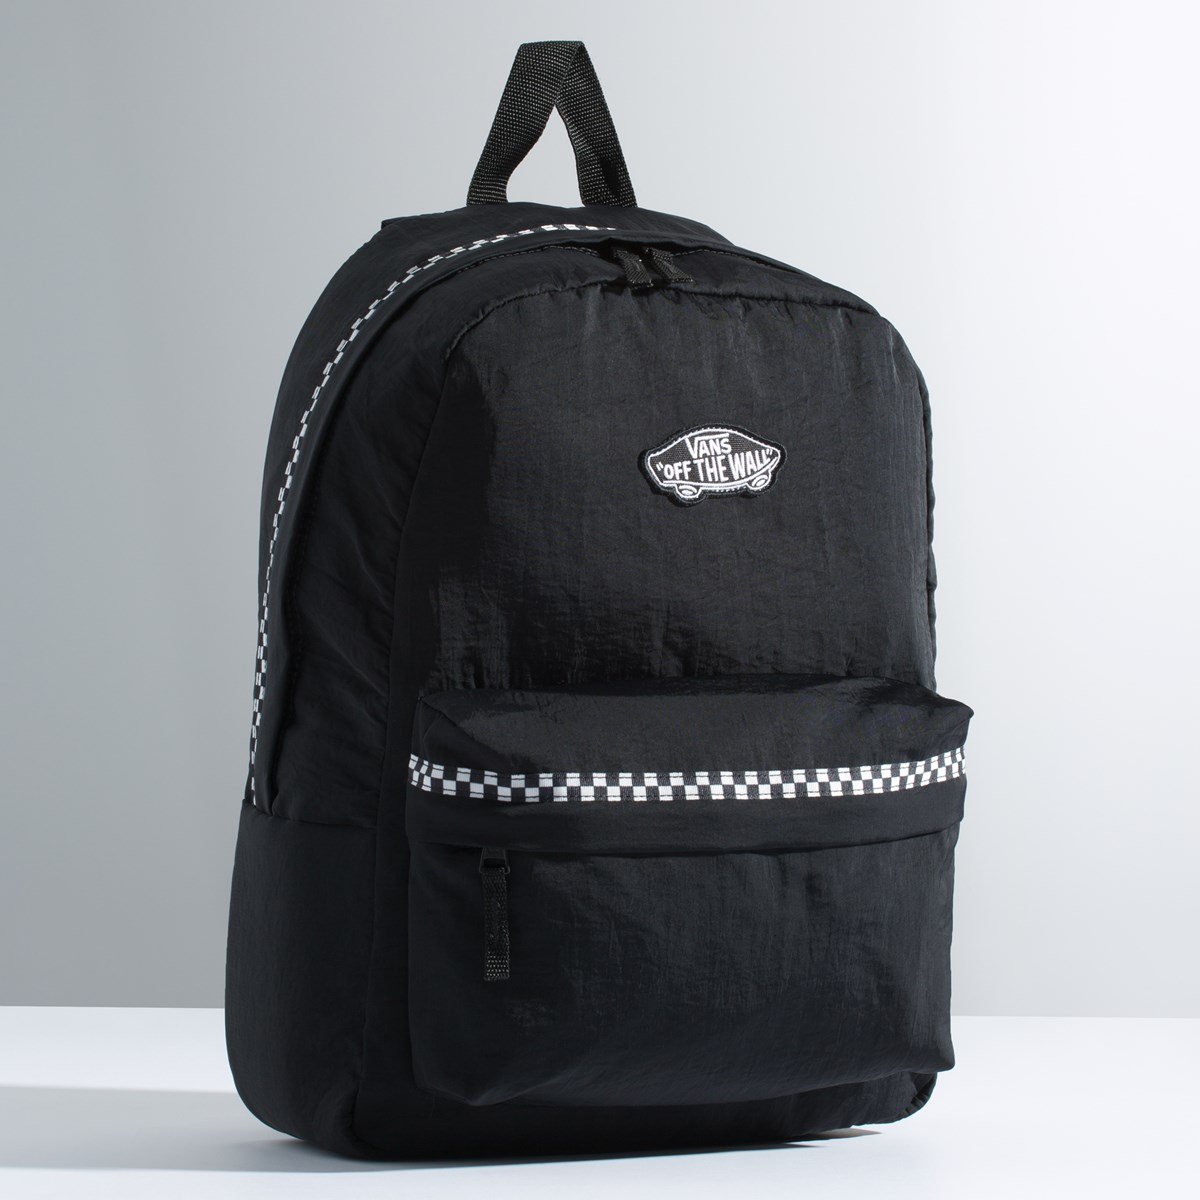 3530dd10ac1 Expedition Backpack in Black